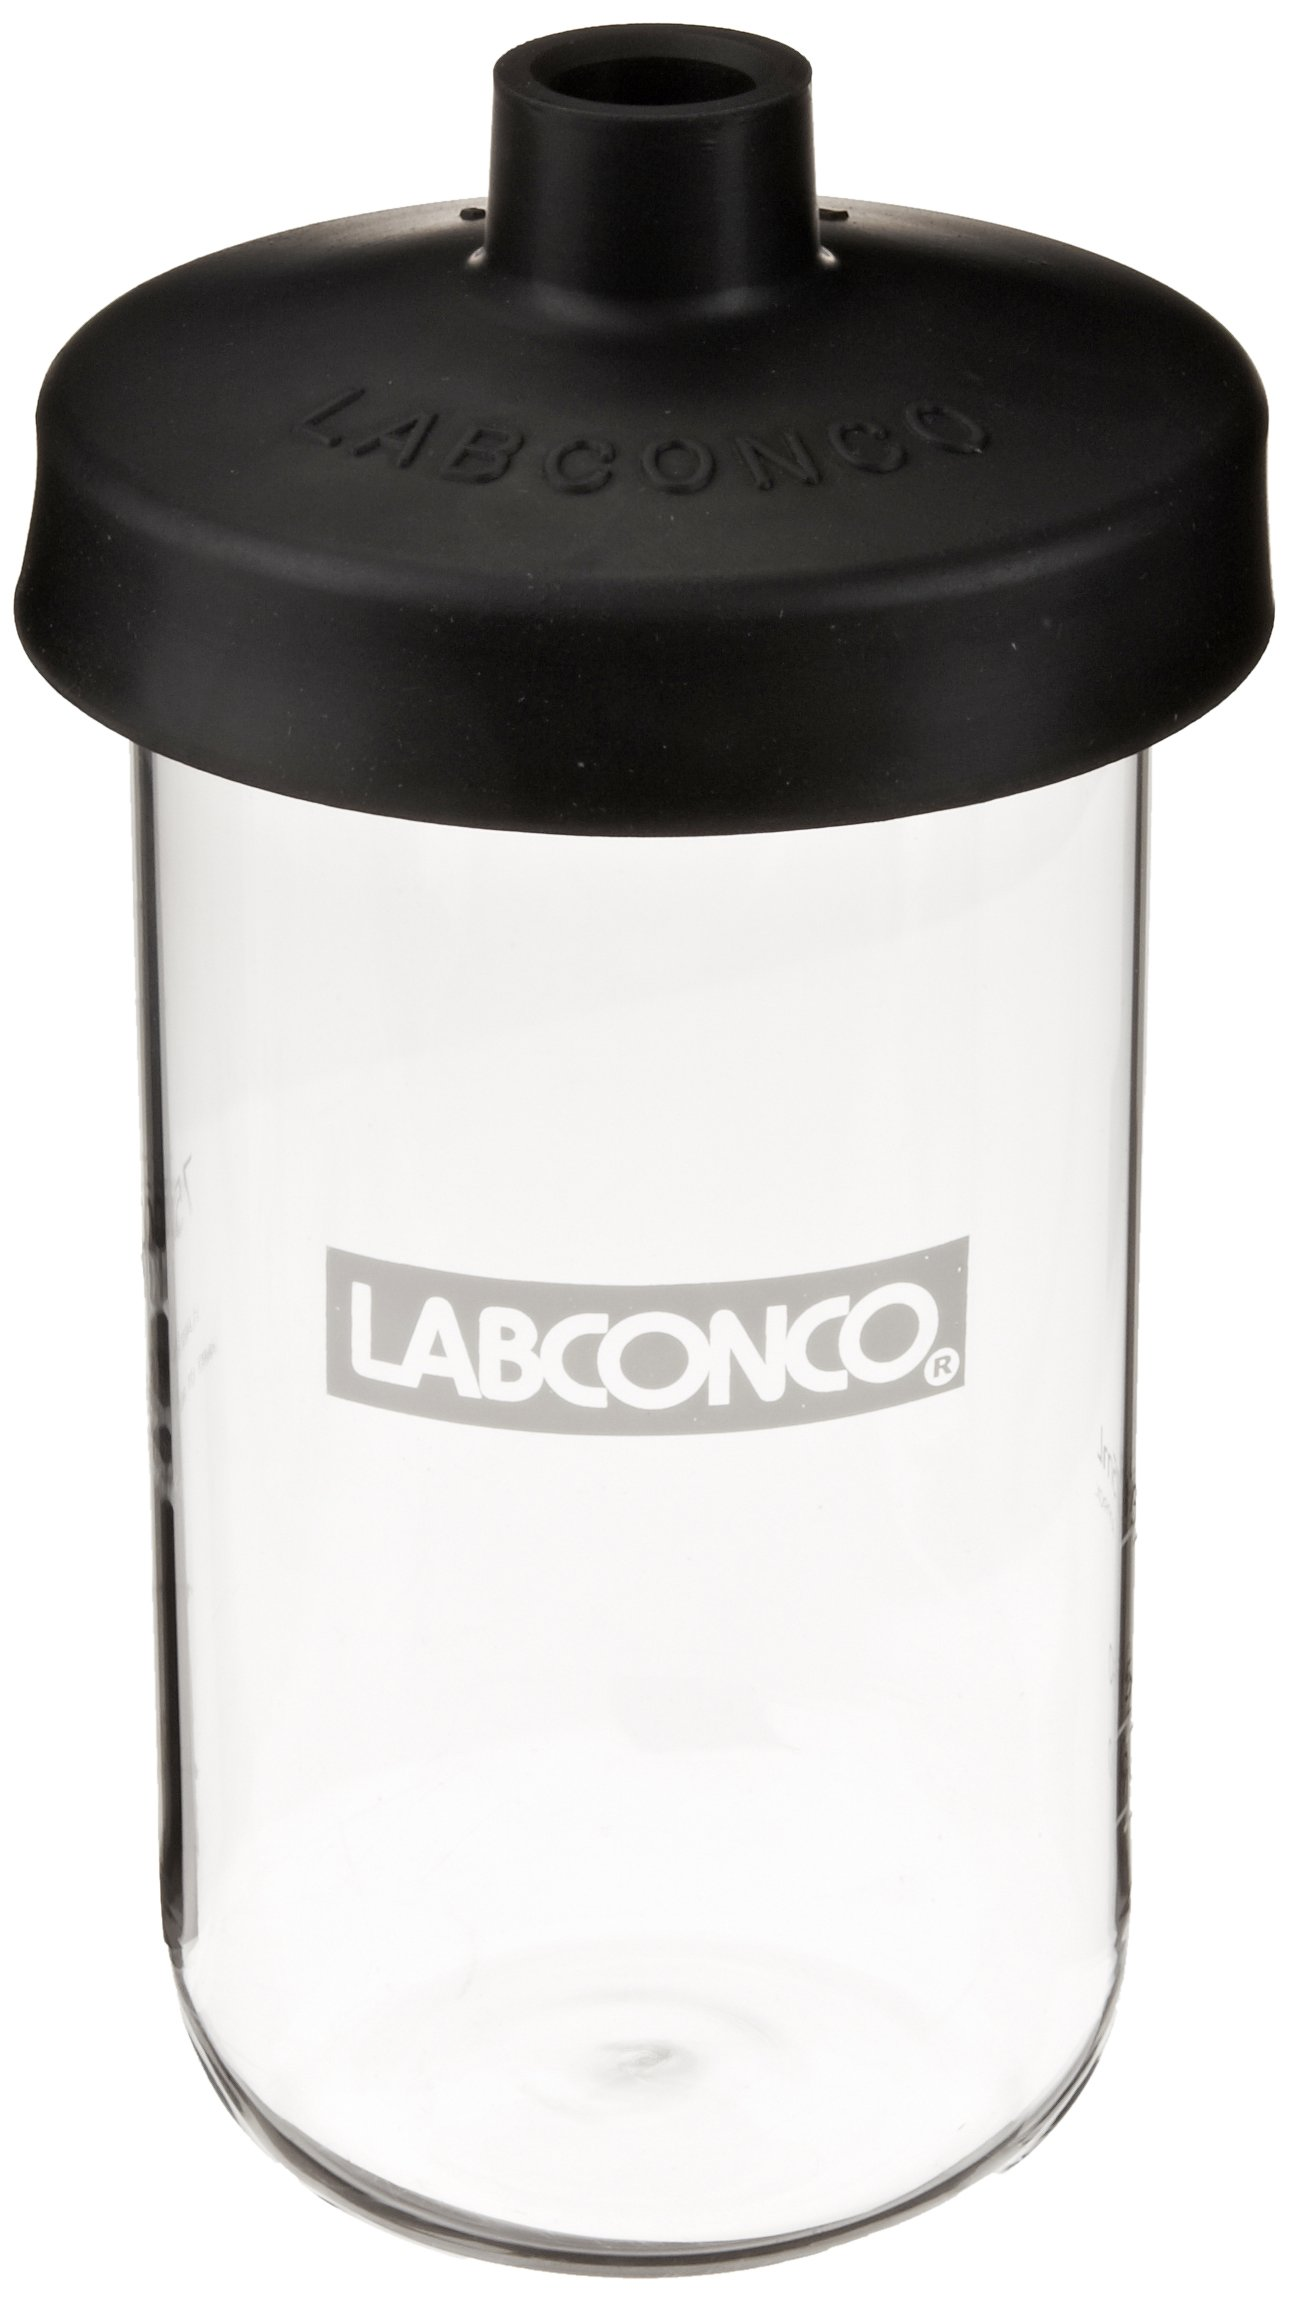 Labconco Fast Freeze 7541100 Borosilicate Glass Wide Mouth Flat Bottom Complete Flask, 750ml Capacity by Labconco